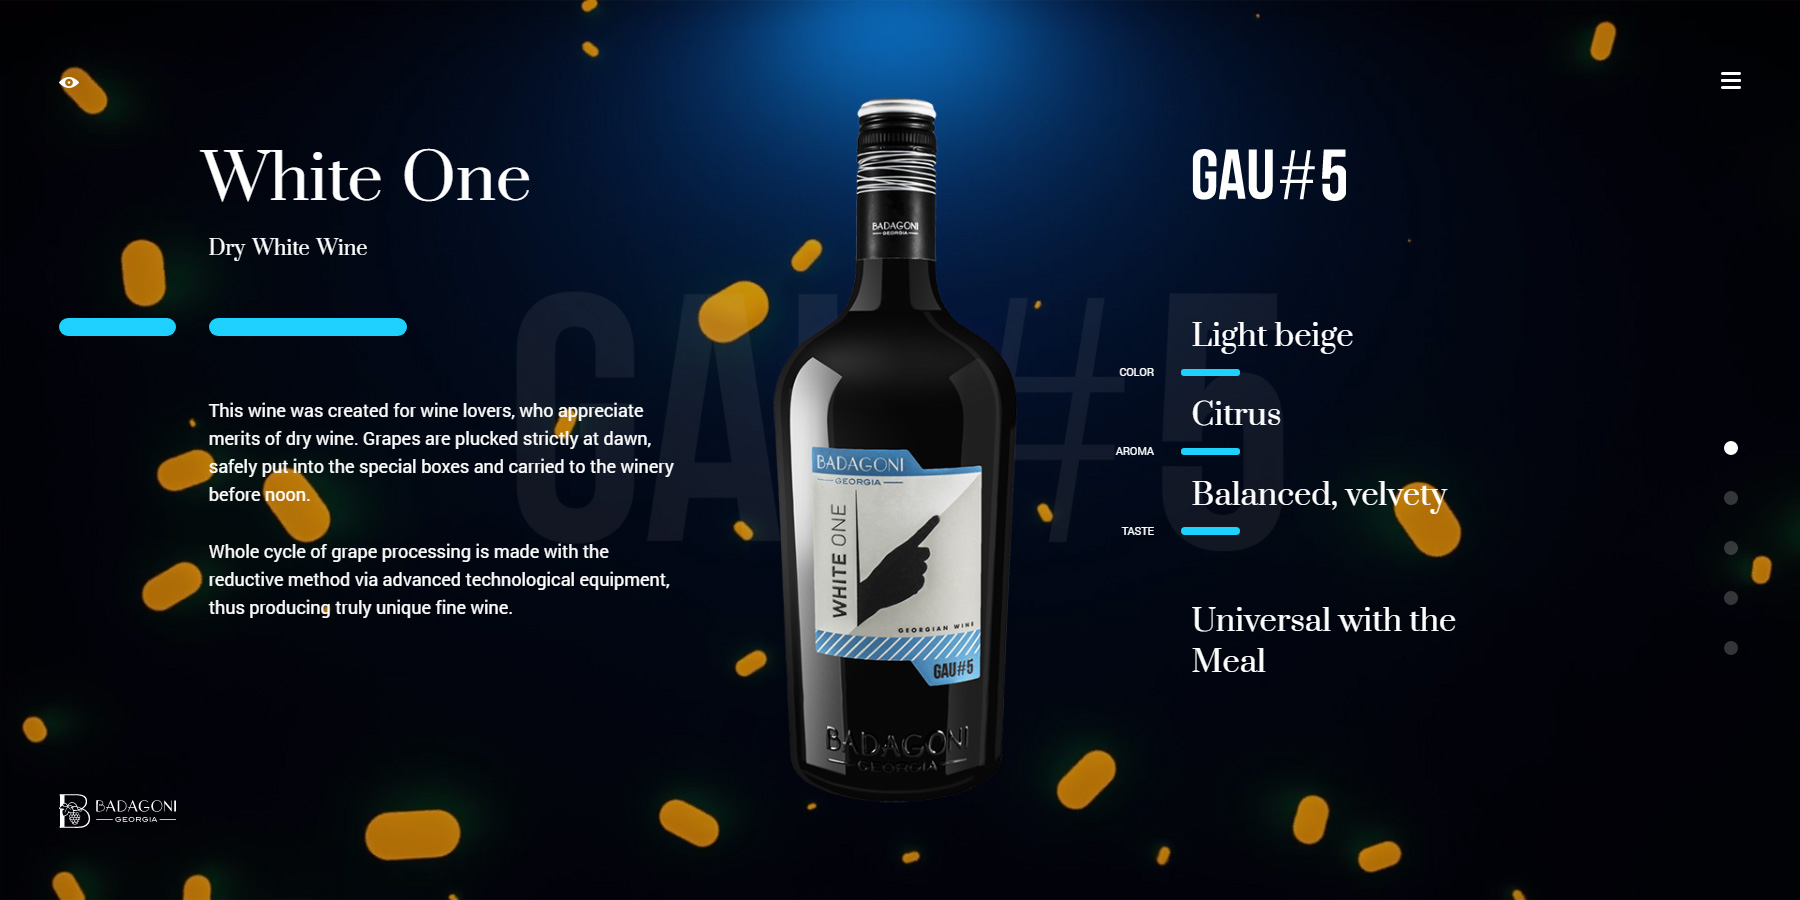 GAU#5 - Website of the Day